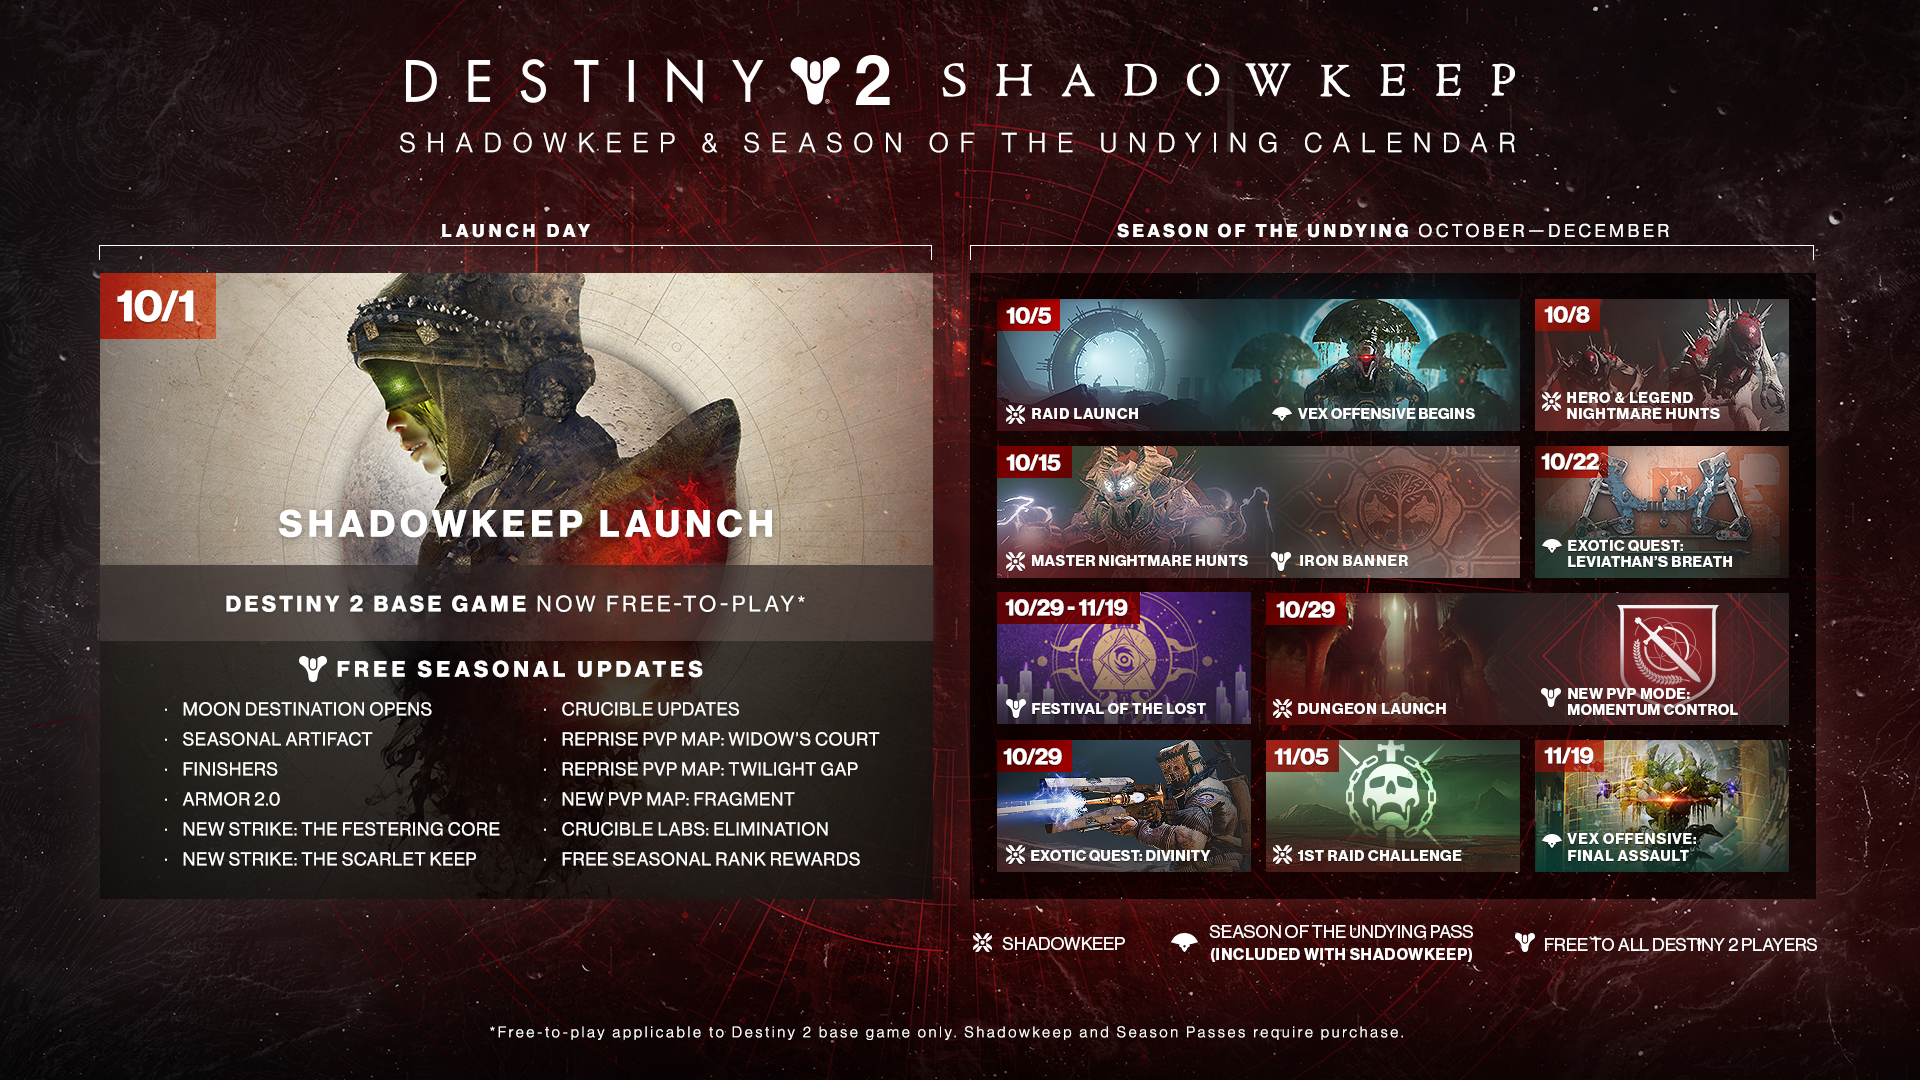 Destiny 2: Shadowkeep gets updated content roadmap and weapon buff breakdown | PC Gamer